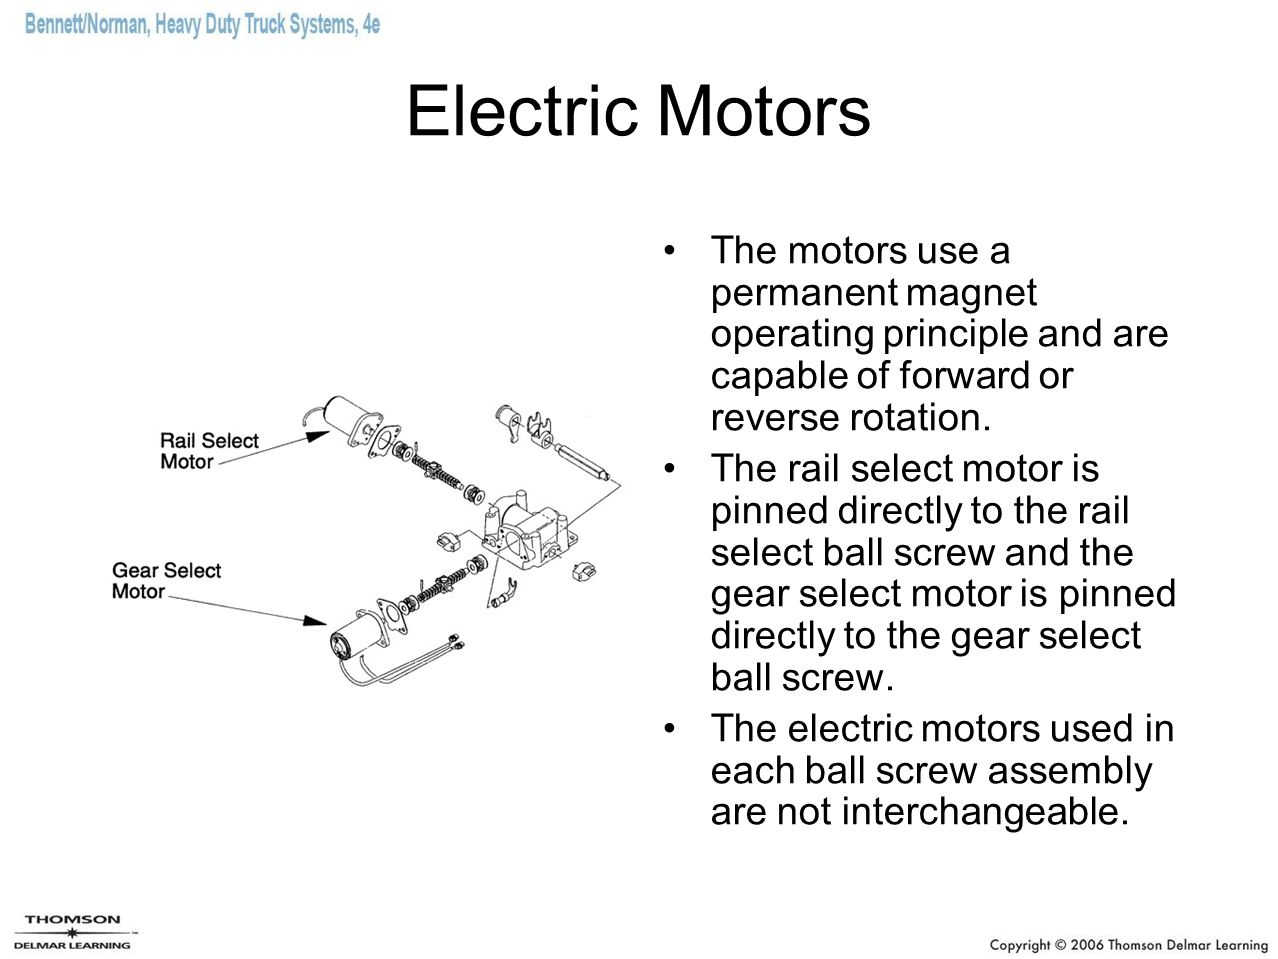 Electric Motors The motors use a permanent magnet operating principle and are capable of forward or reverse rotation. The rail select motor is pinned